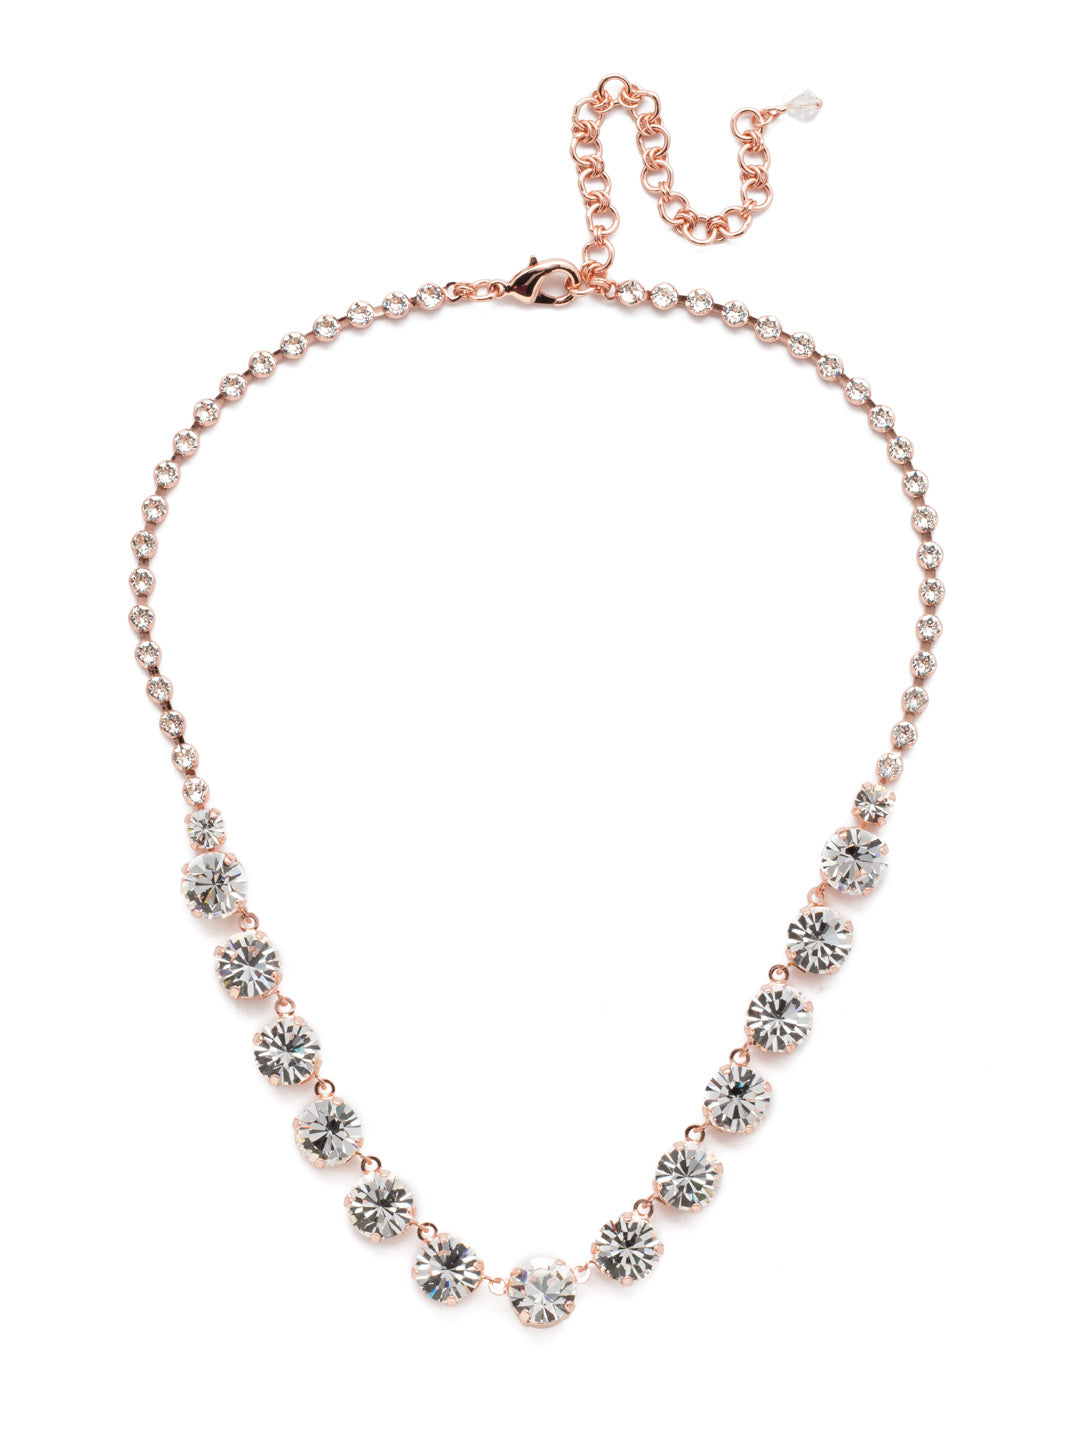 Repeating Rivoli Classic Line Necklace - NCU19RGCRY